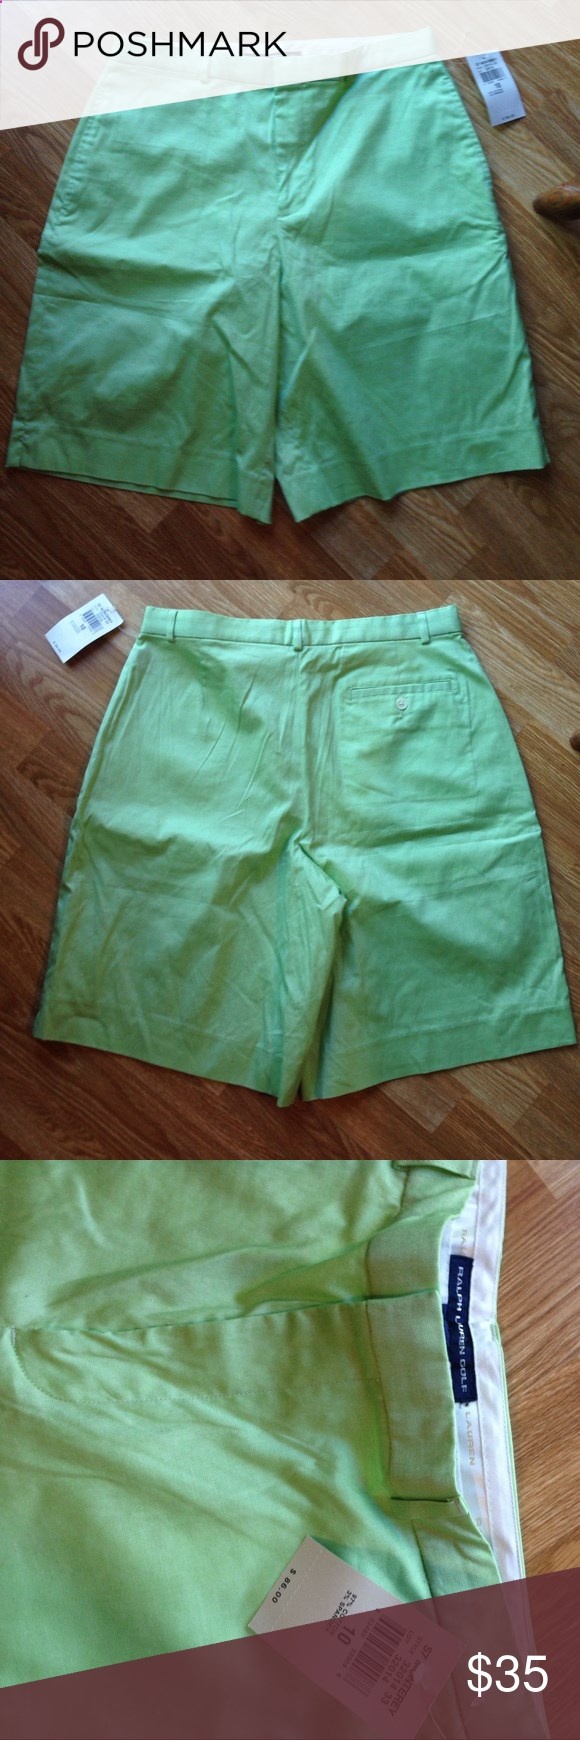 Ralph Lauren Golf Shorts Ralph Lauren Golf Shorts. Size 10. 97% Cotton 3% Spandex. New with tags $86. Front and 1 back pockets. Zipper fly with clasp closure. Pretty spring green. Waist measures 30 with a 10.5 inseam. See small spot in pic by pocket. Should come out but they are new and didnt want to wash. Super nice Shorts. Any questions please ask. Thank You 😊 Ralph Lauren Shorts